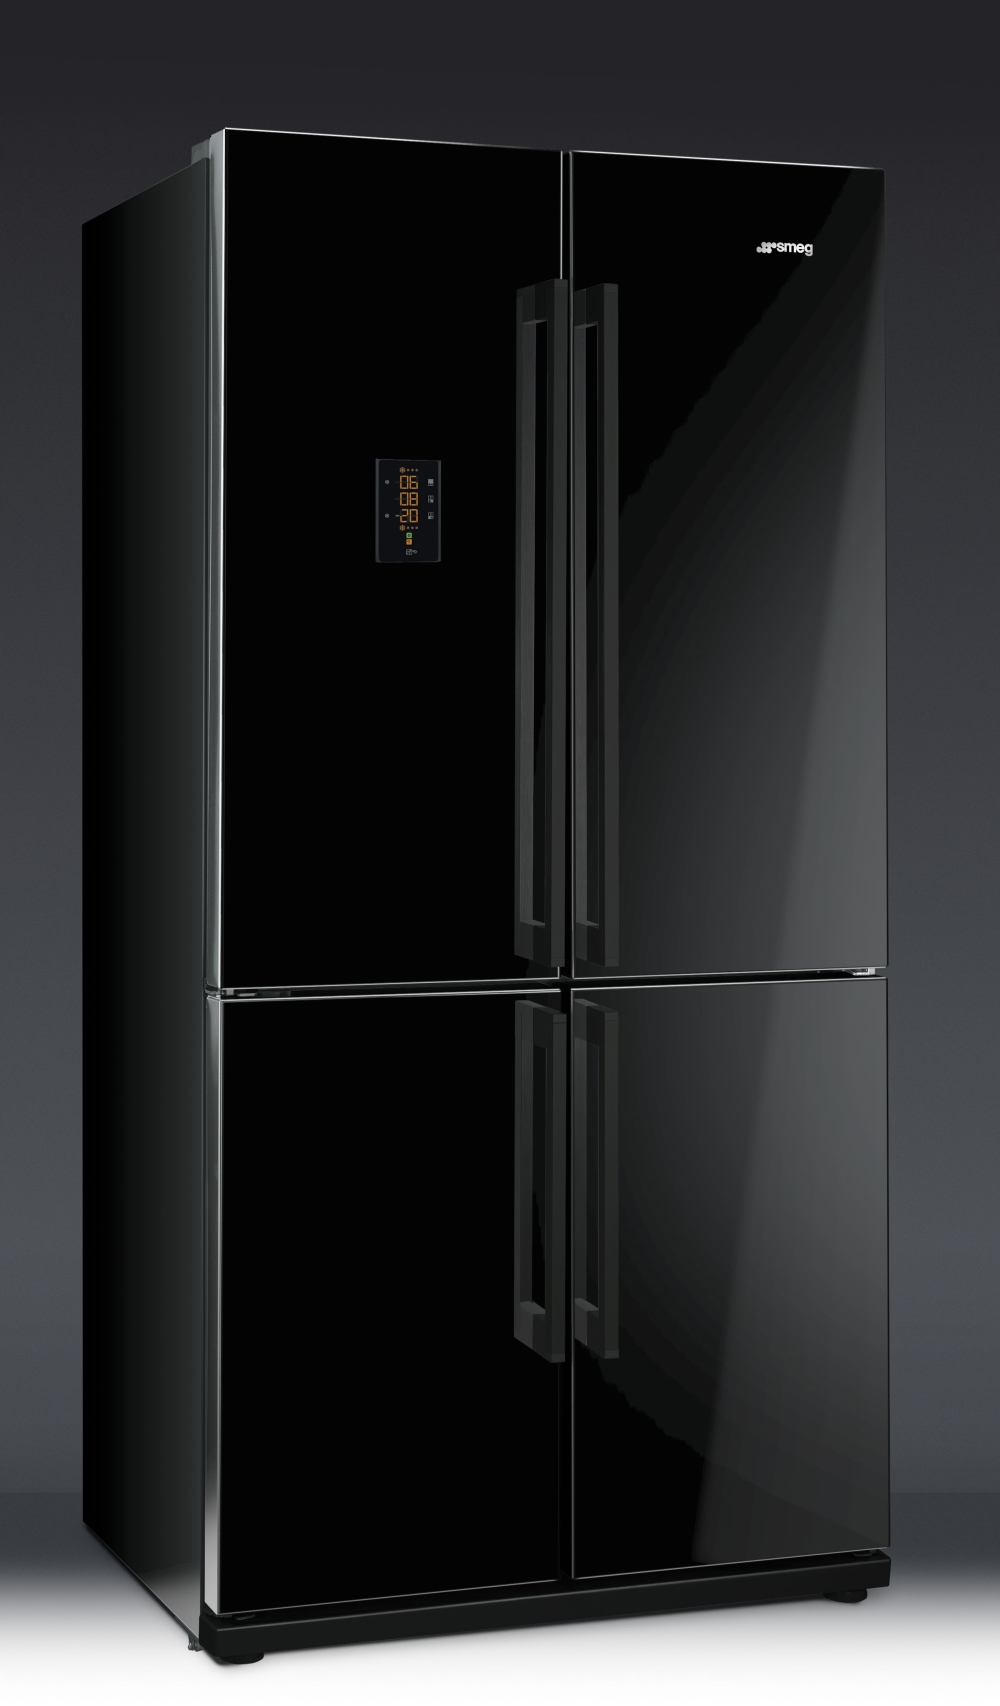 informationsseite h ttich smeg fq60npe stand k hl gefrierkombination french door. Black Bedroom Furniture Sets. Home Design Ideas